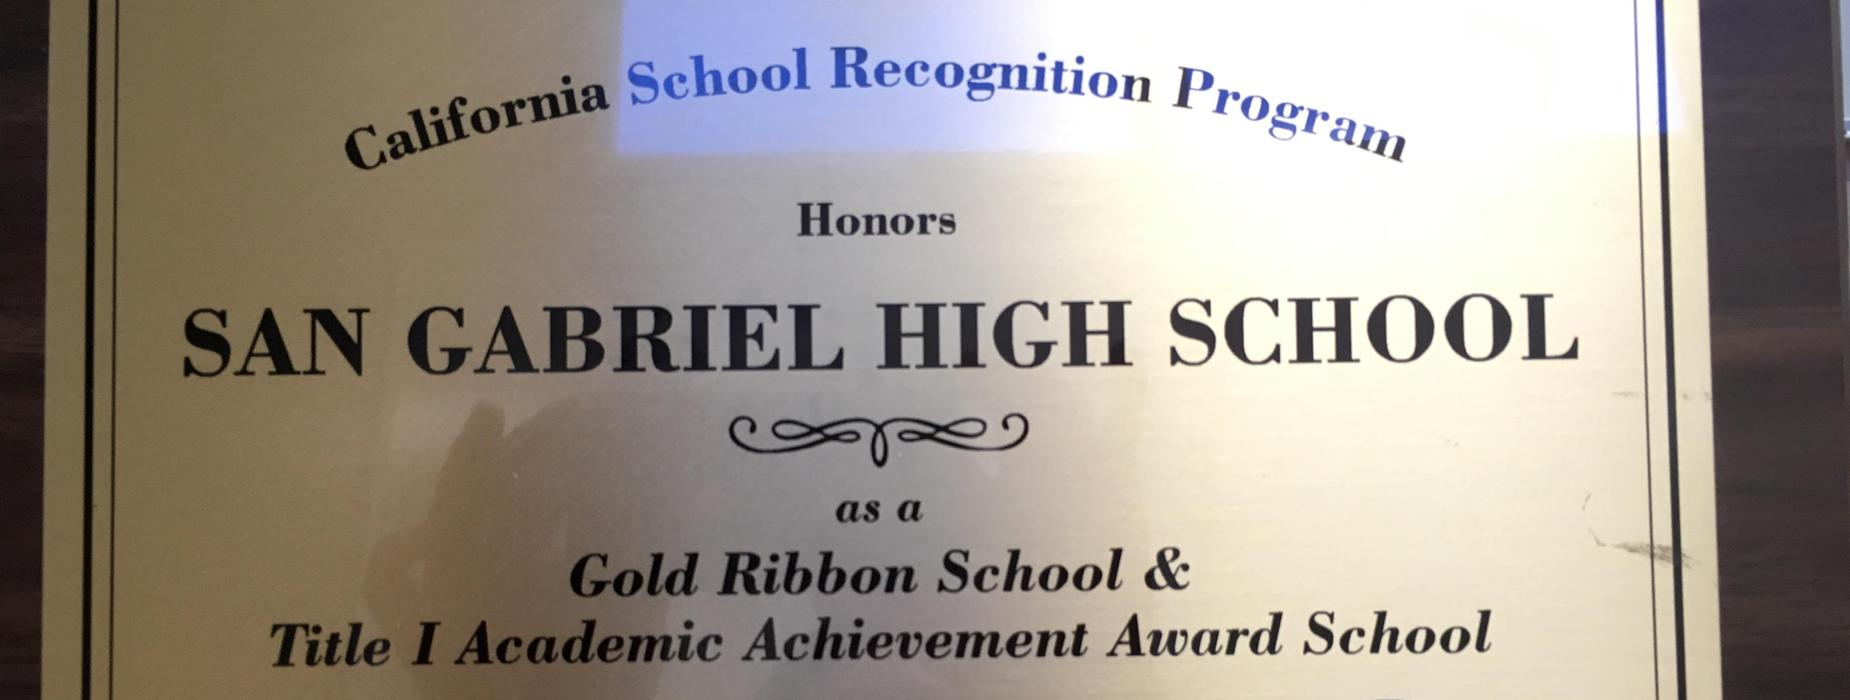 Honoring SGHS as a Gold Ribbon Title 1 School